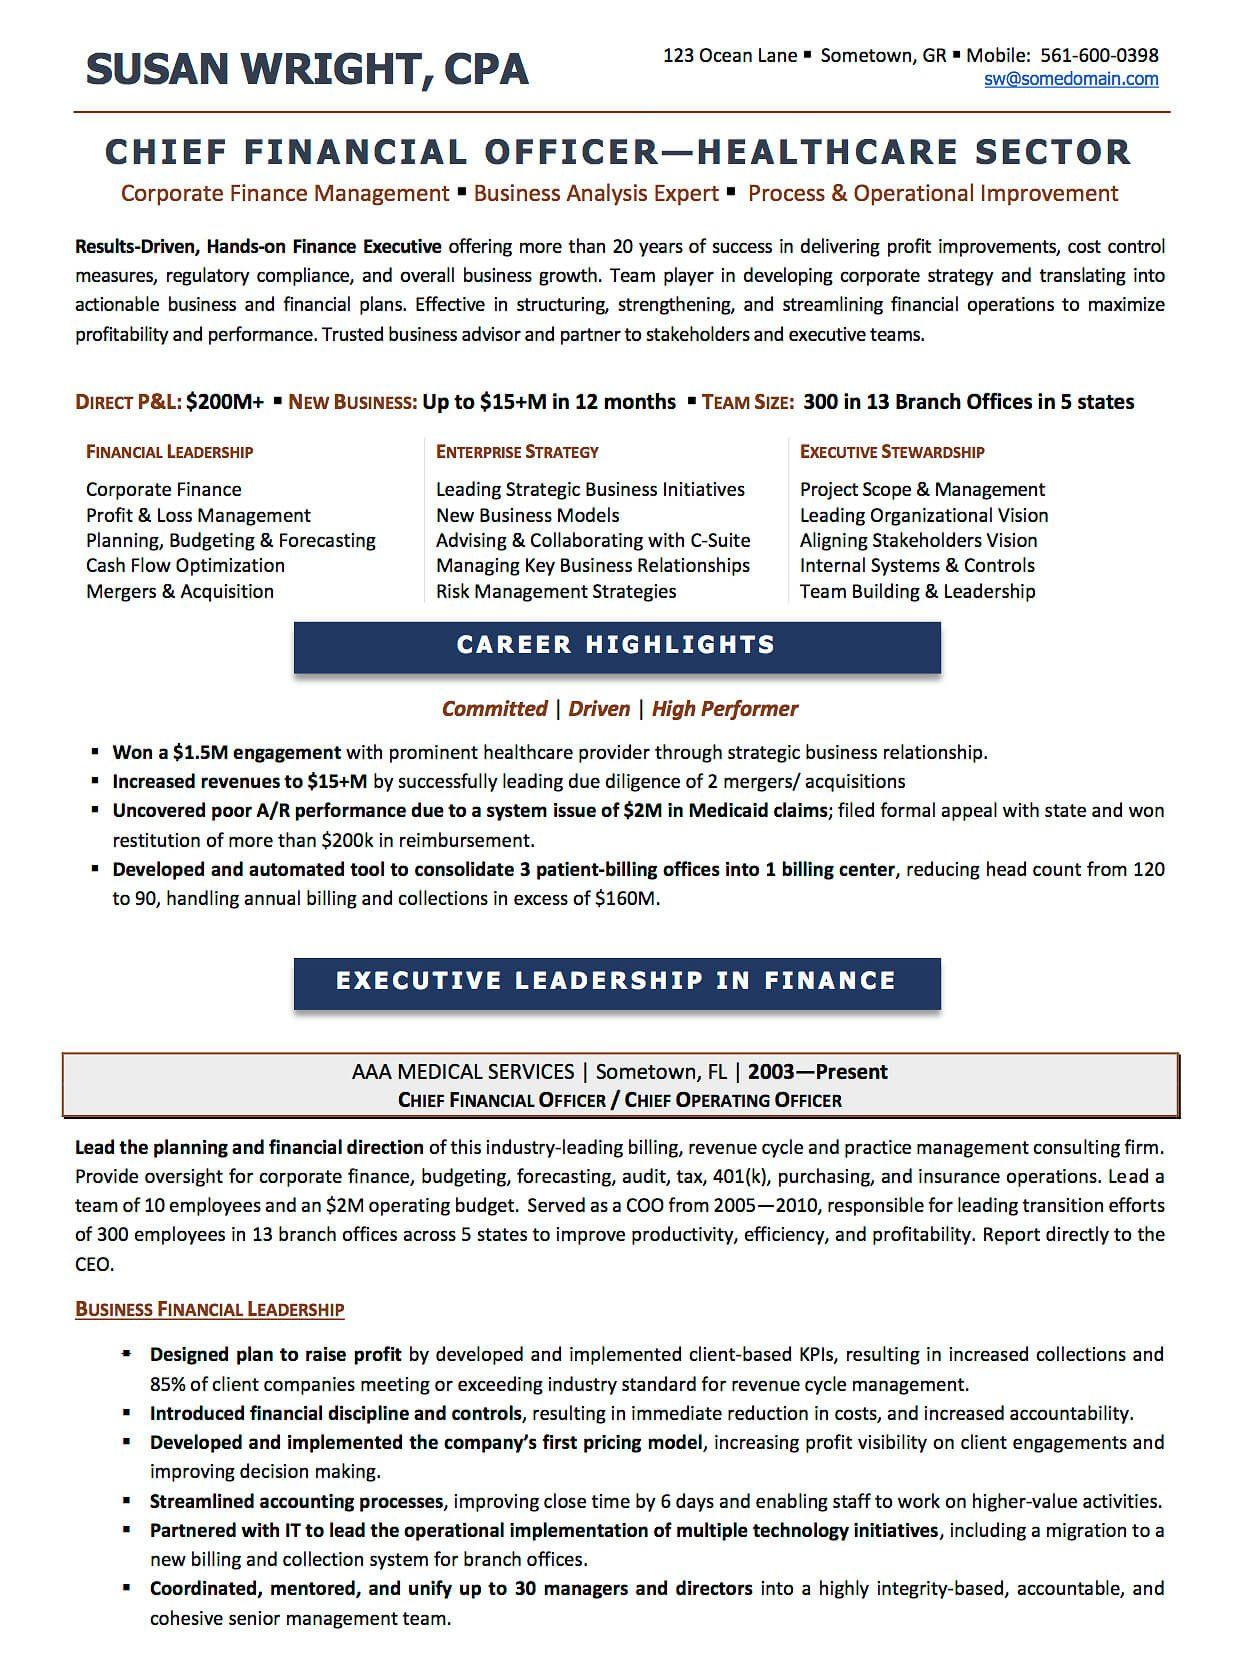 resume examples  cv sample  resume templates  rso resumes also  cfo sample